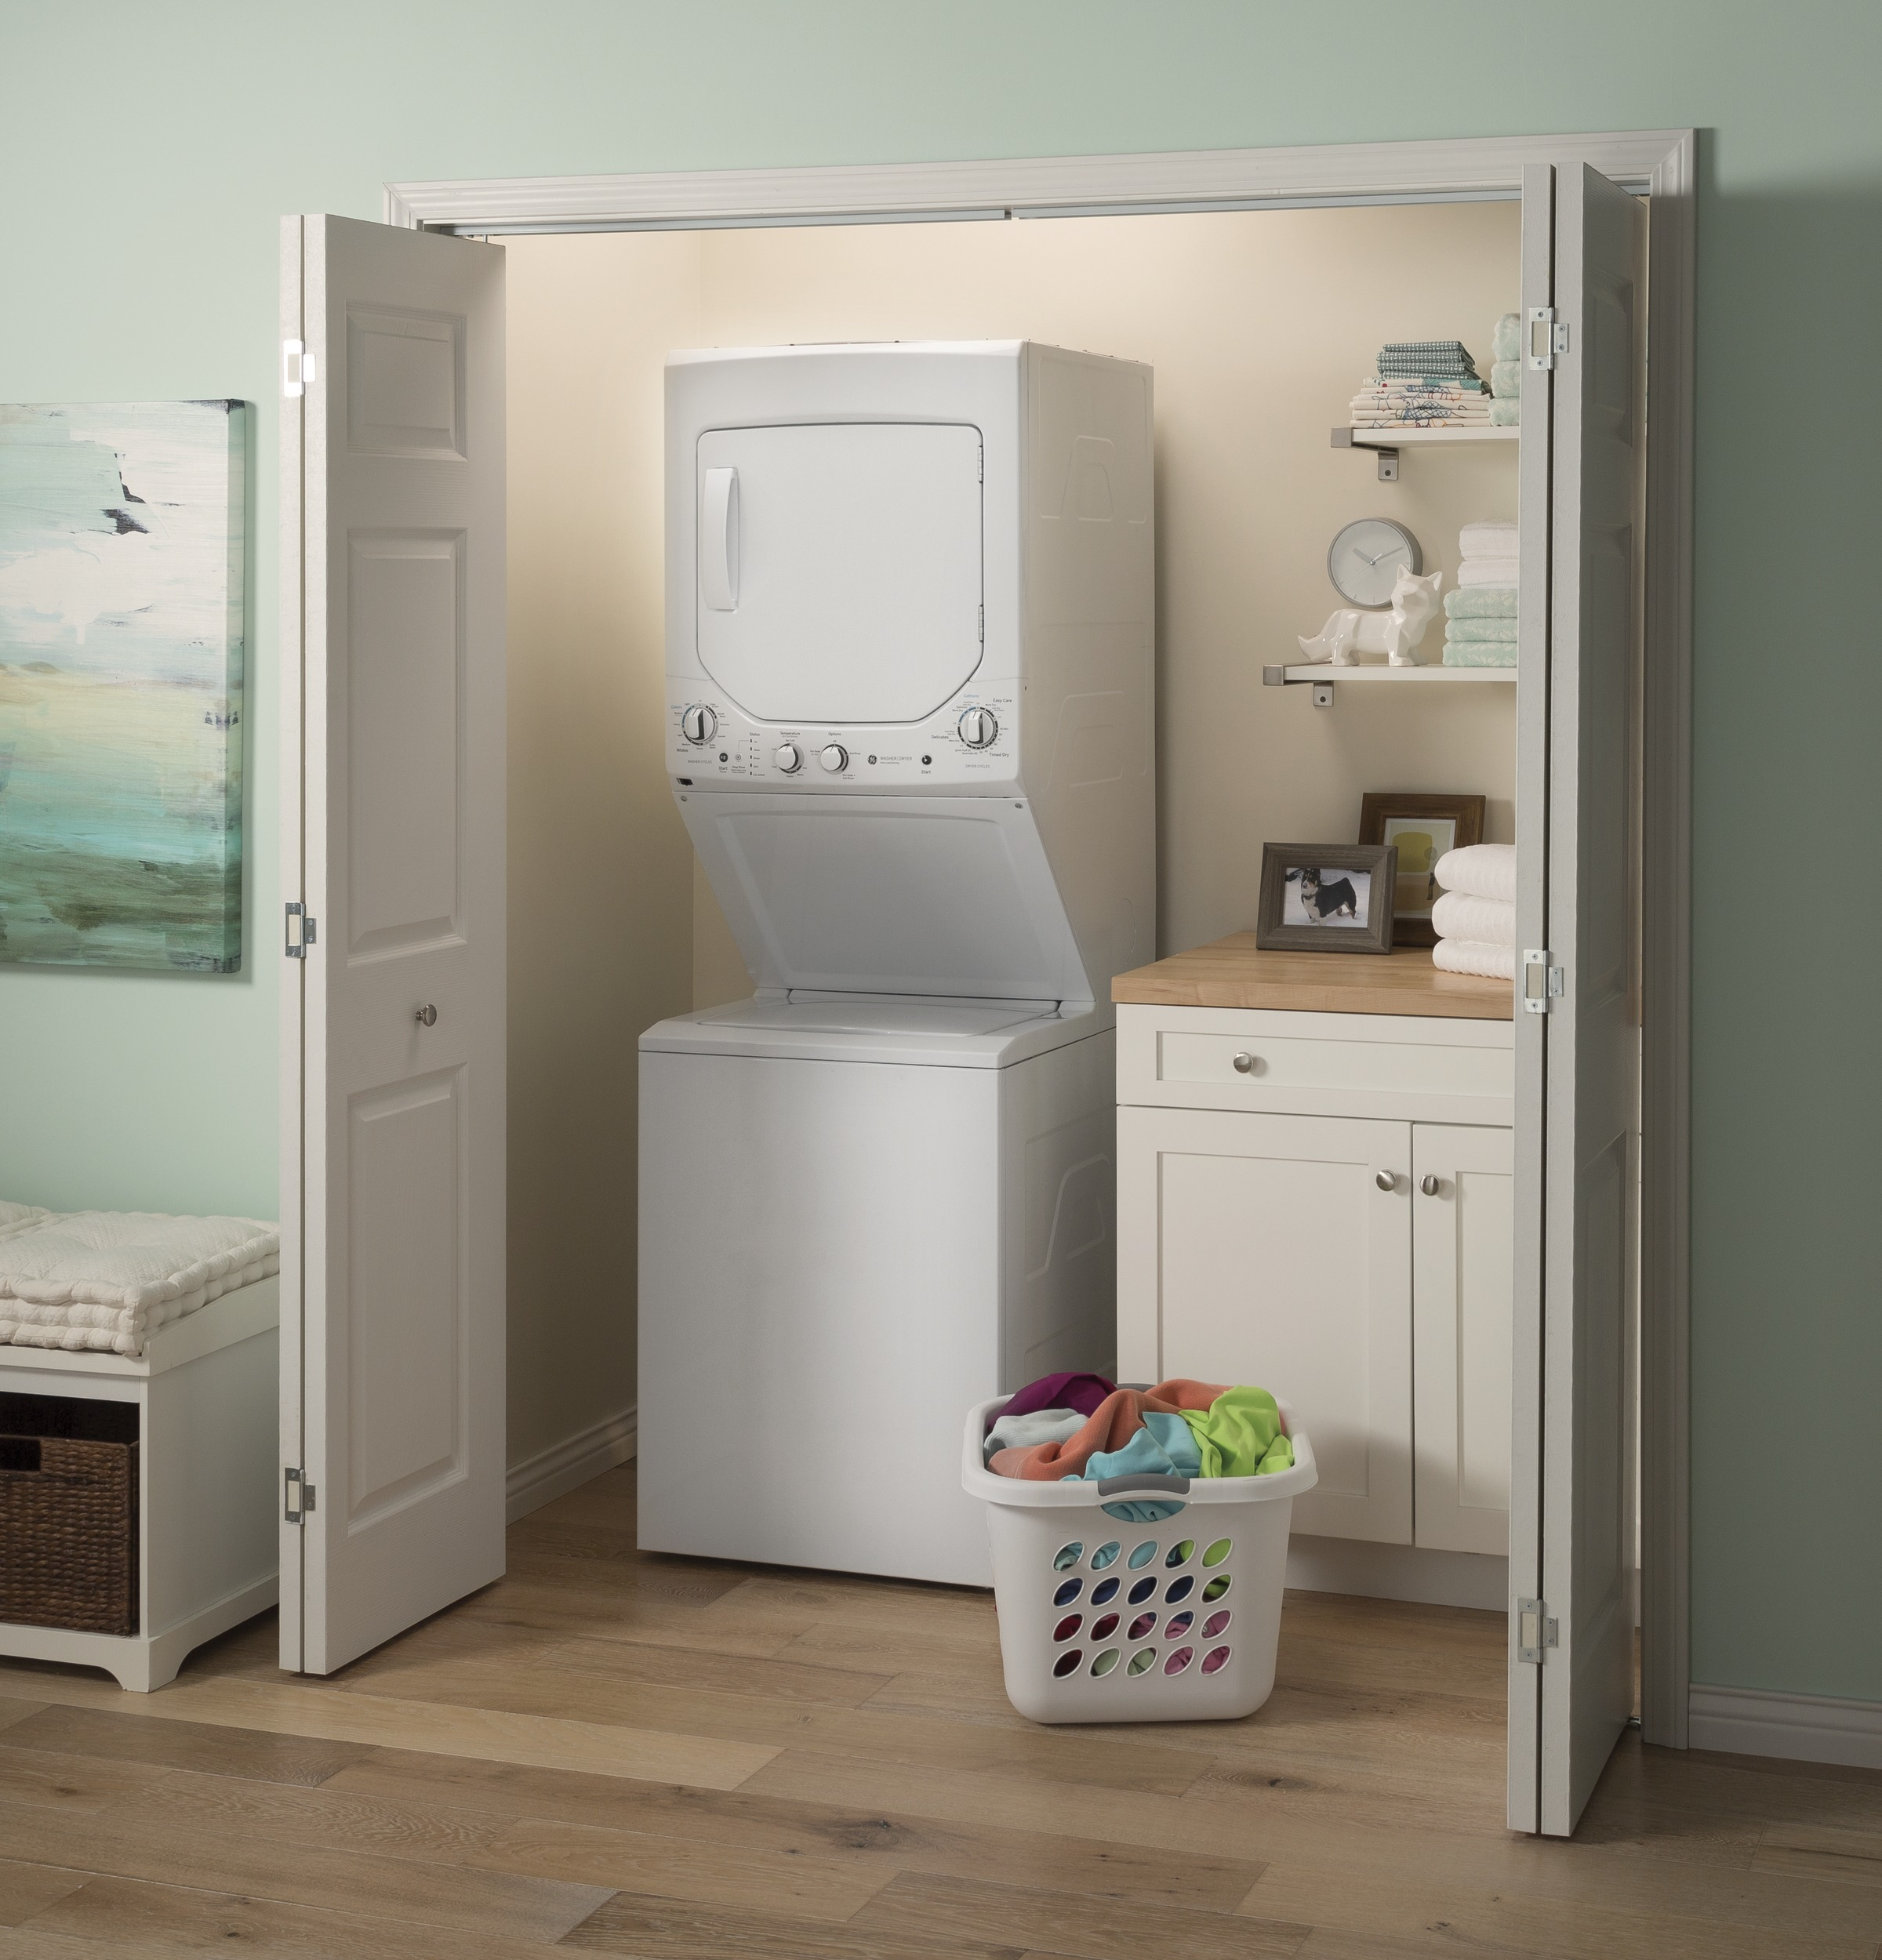 Ge Unitized Spacemaker 23 Doe Cu Ft Capacity Washer With Choosing The Right Circuit Breakers At Home Depot 1 Of 16